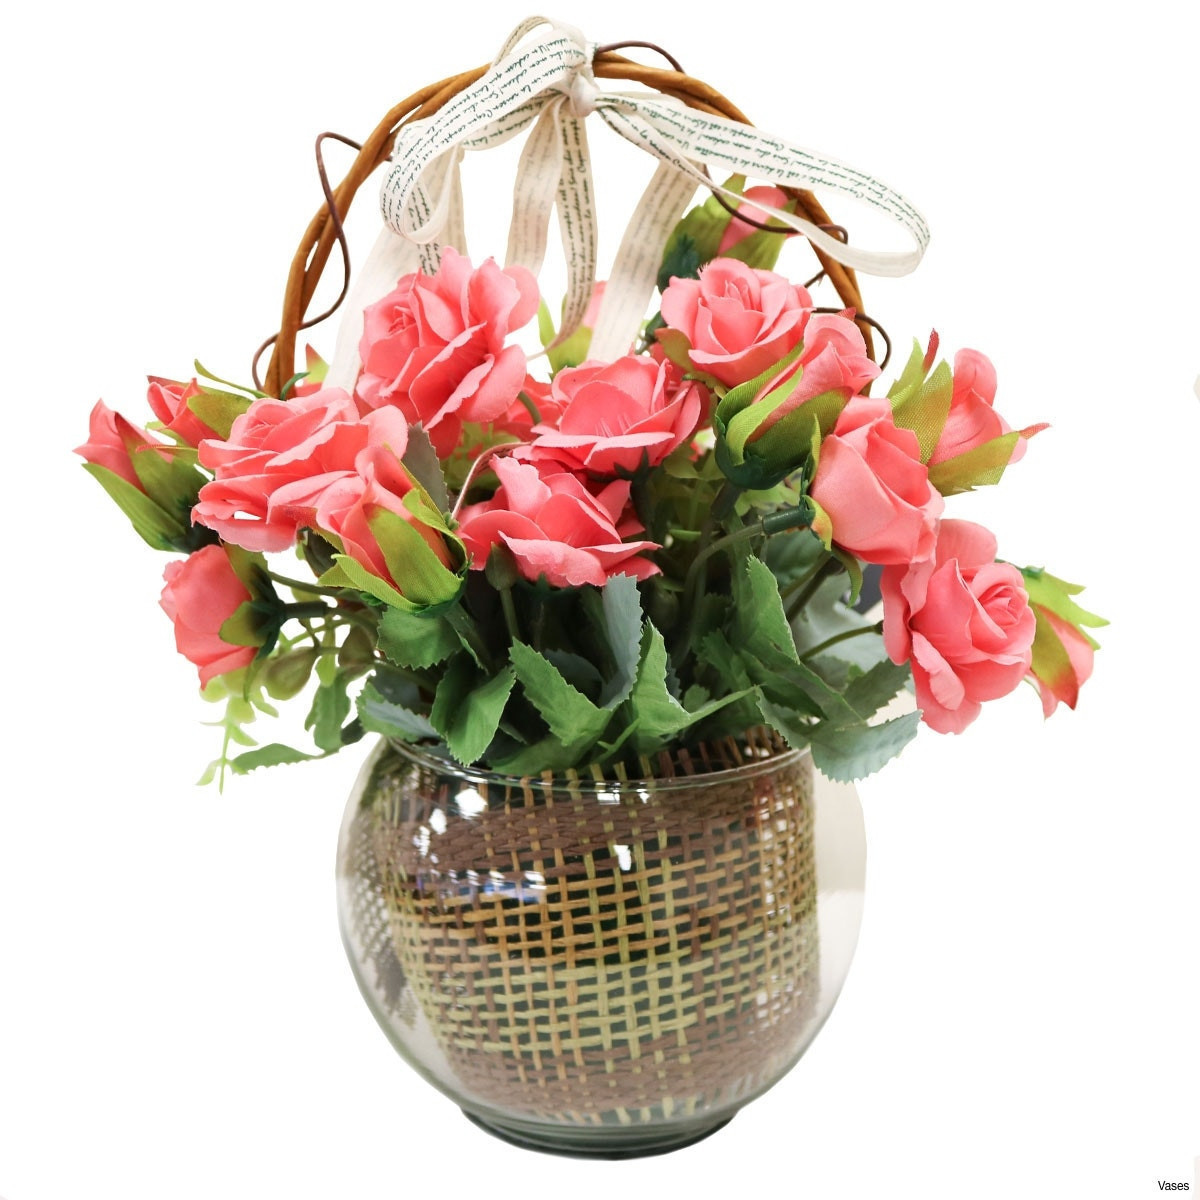 little flower vases of 30 elegant flower basket decoration flower decoration ideas inside bf142 11km 1200x1200h vases pink flower vase i 0d gold inspiration